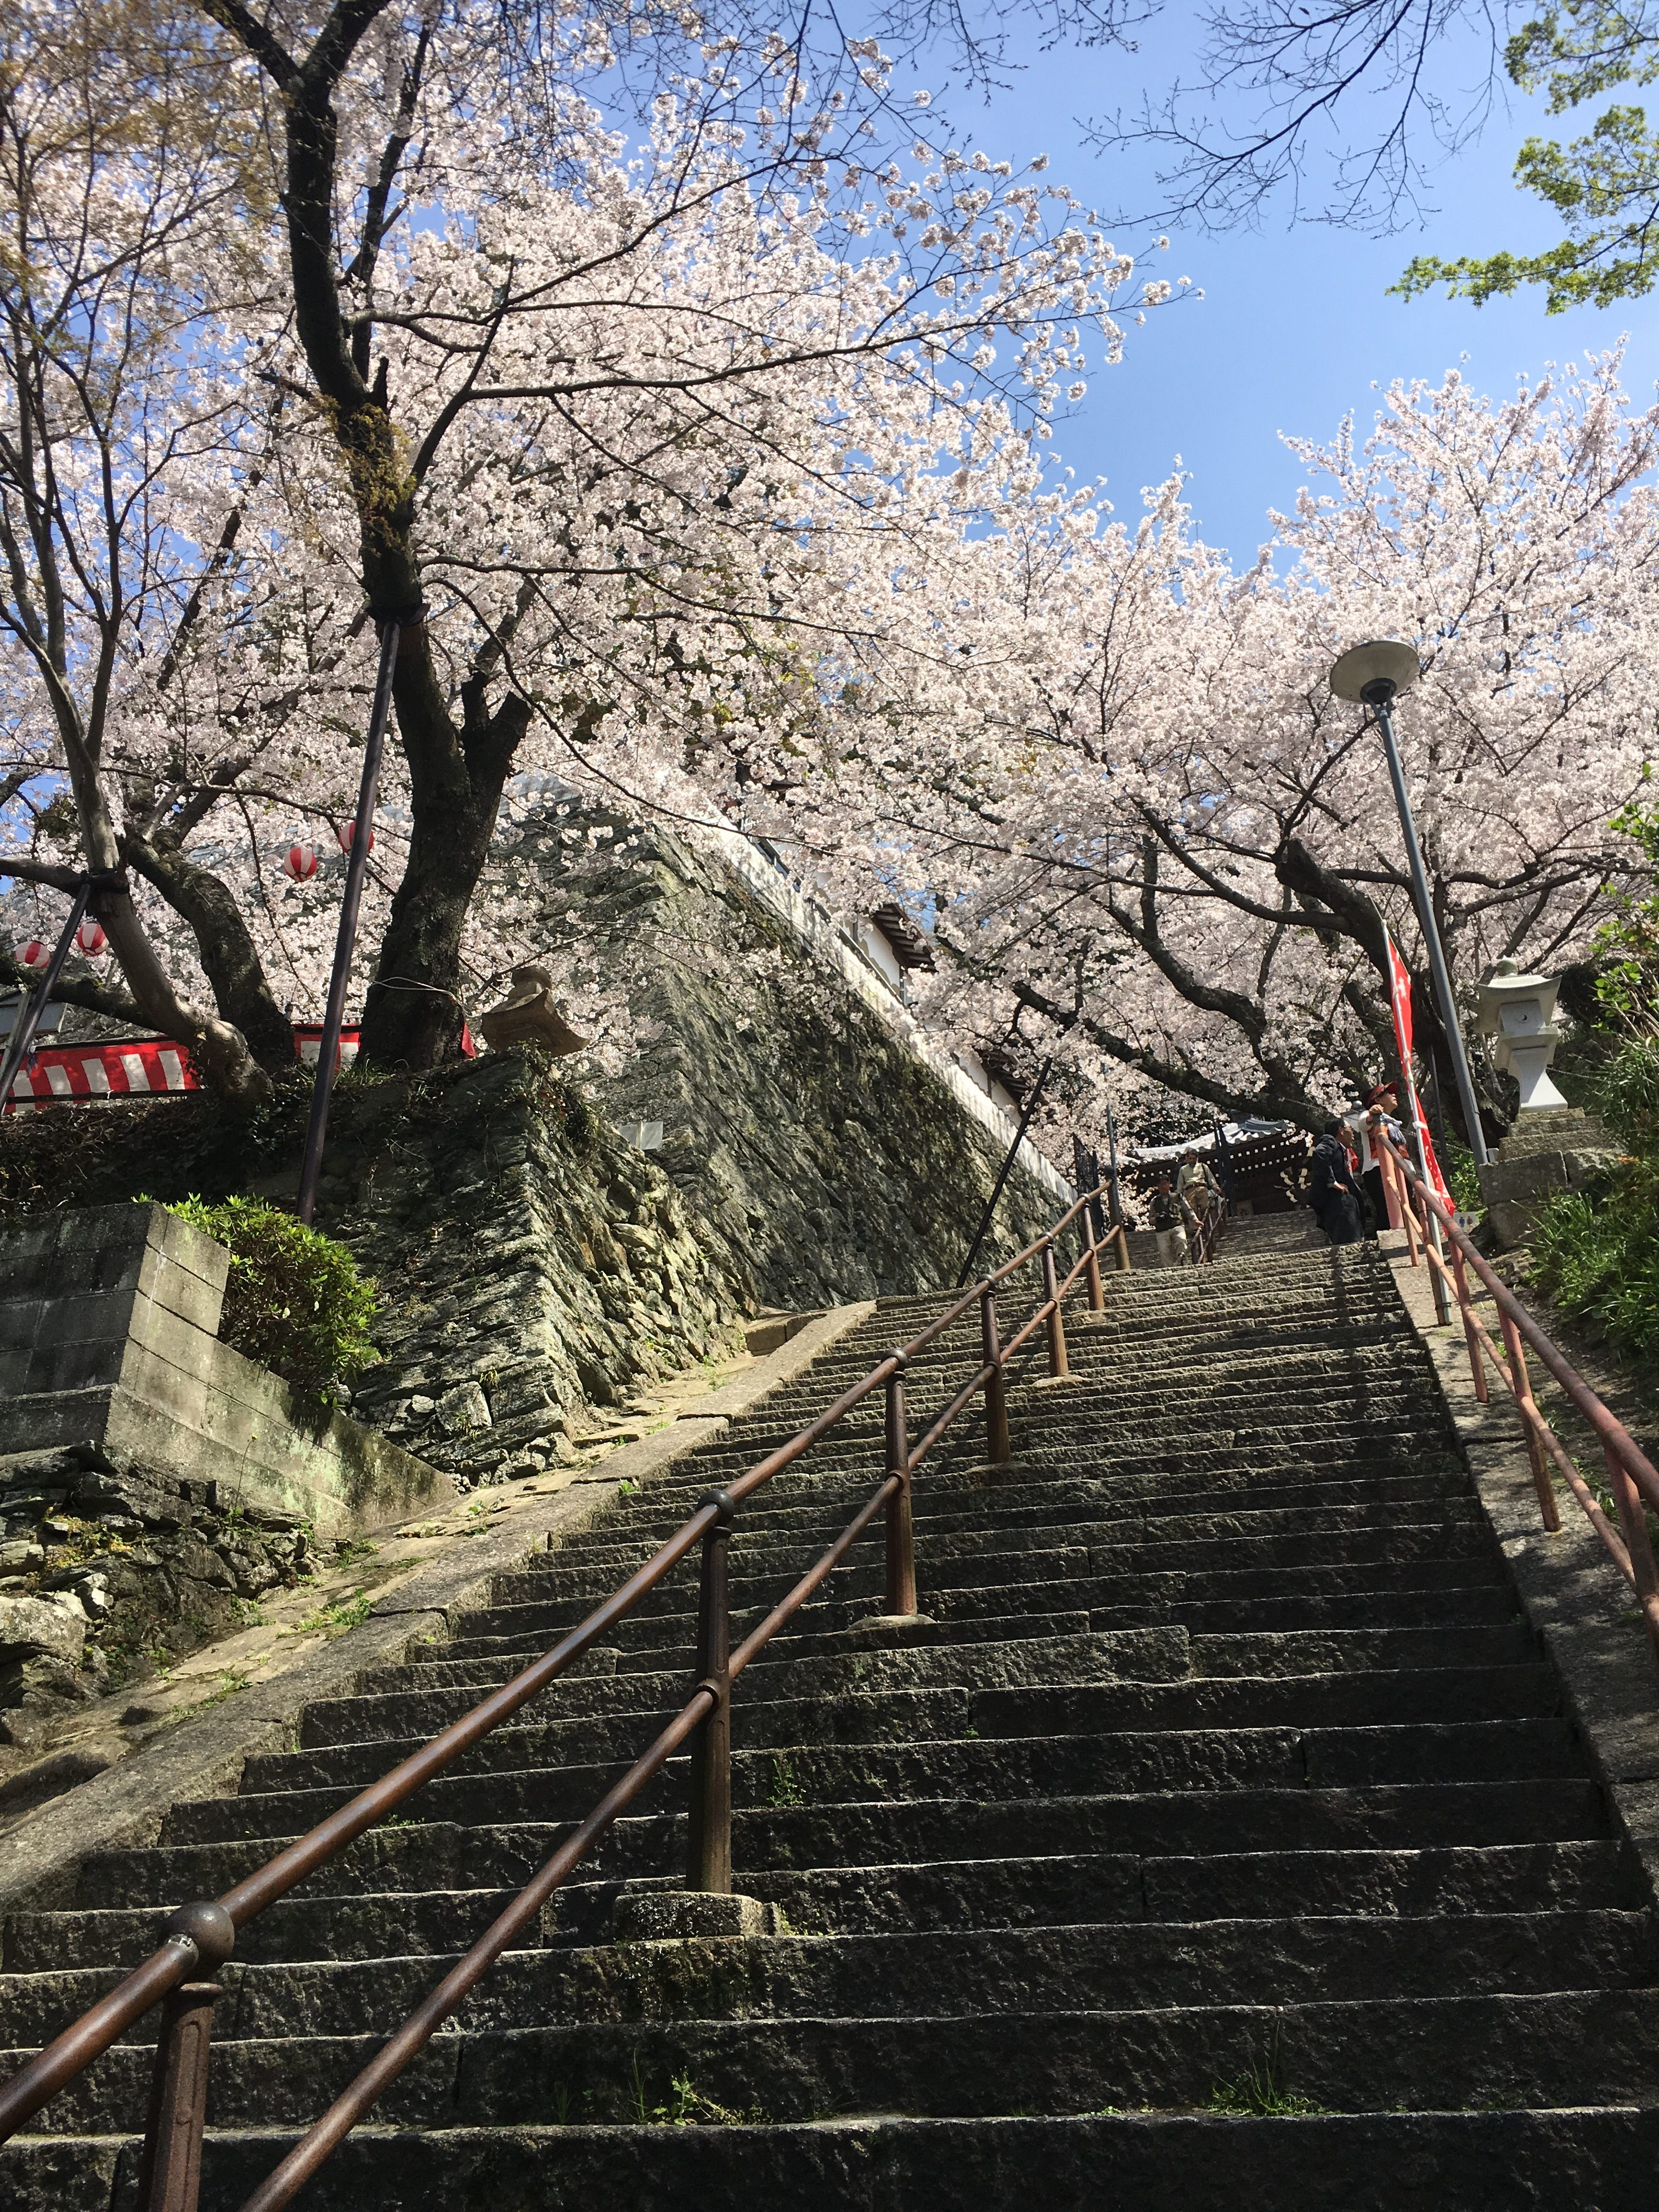 tall stone staircase of Kimii-dera temple in sakura season